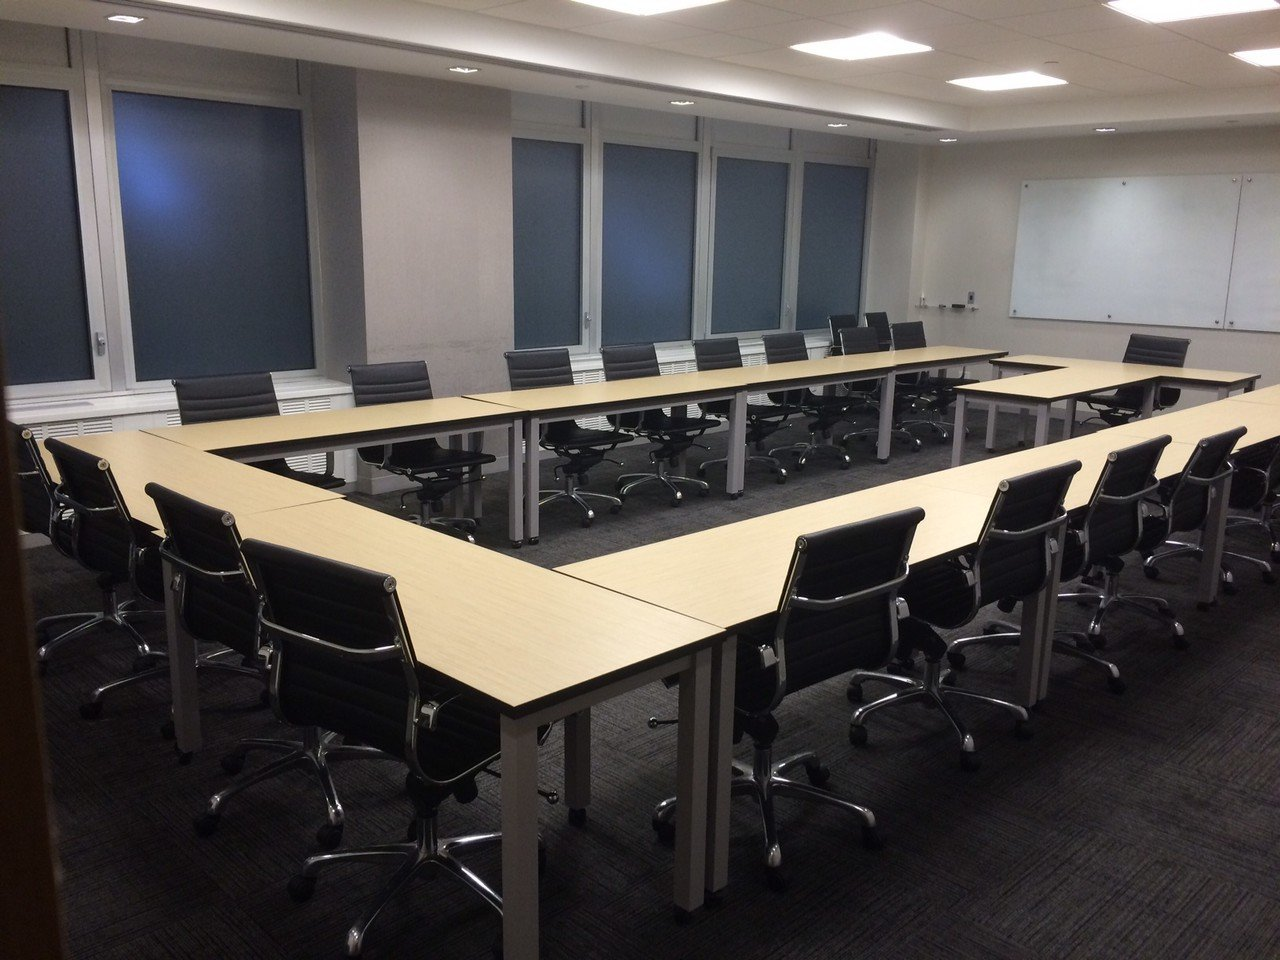 NYC training rooms Meetingraum Corporate Suites 30 person Training Room 8A image 2